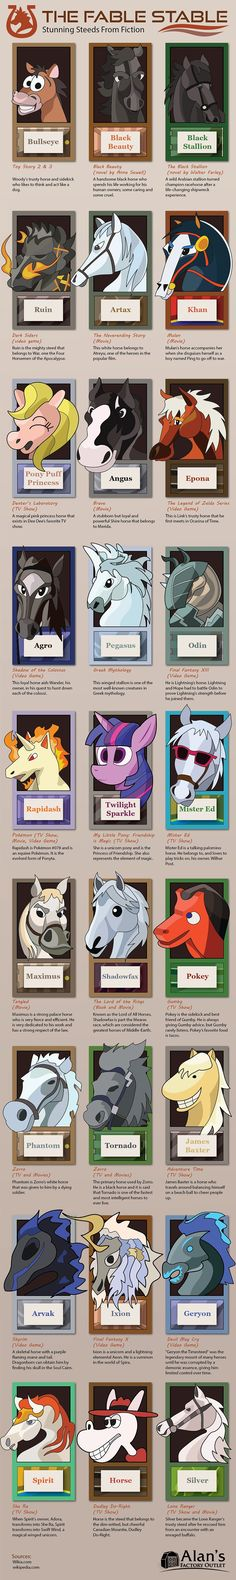 The Fable Stable: Stunning Steeds from Fiction #Infographic #Entertainment